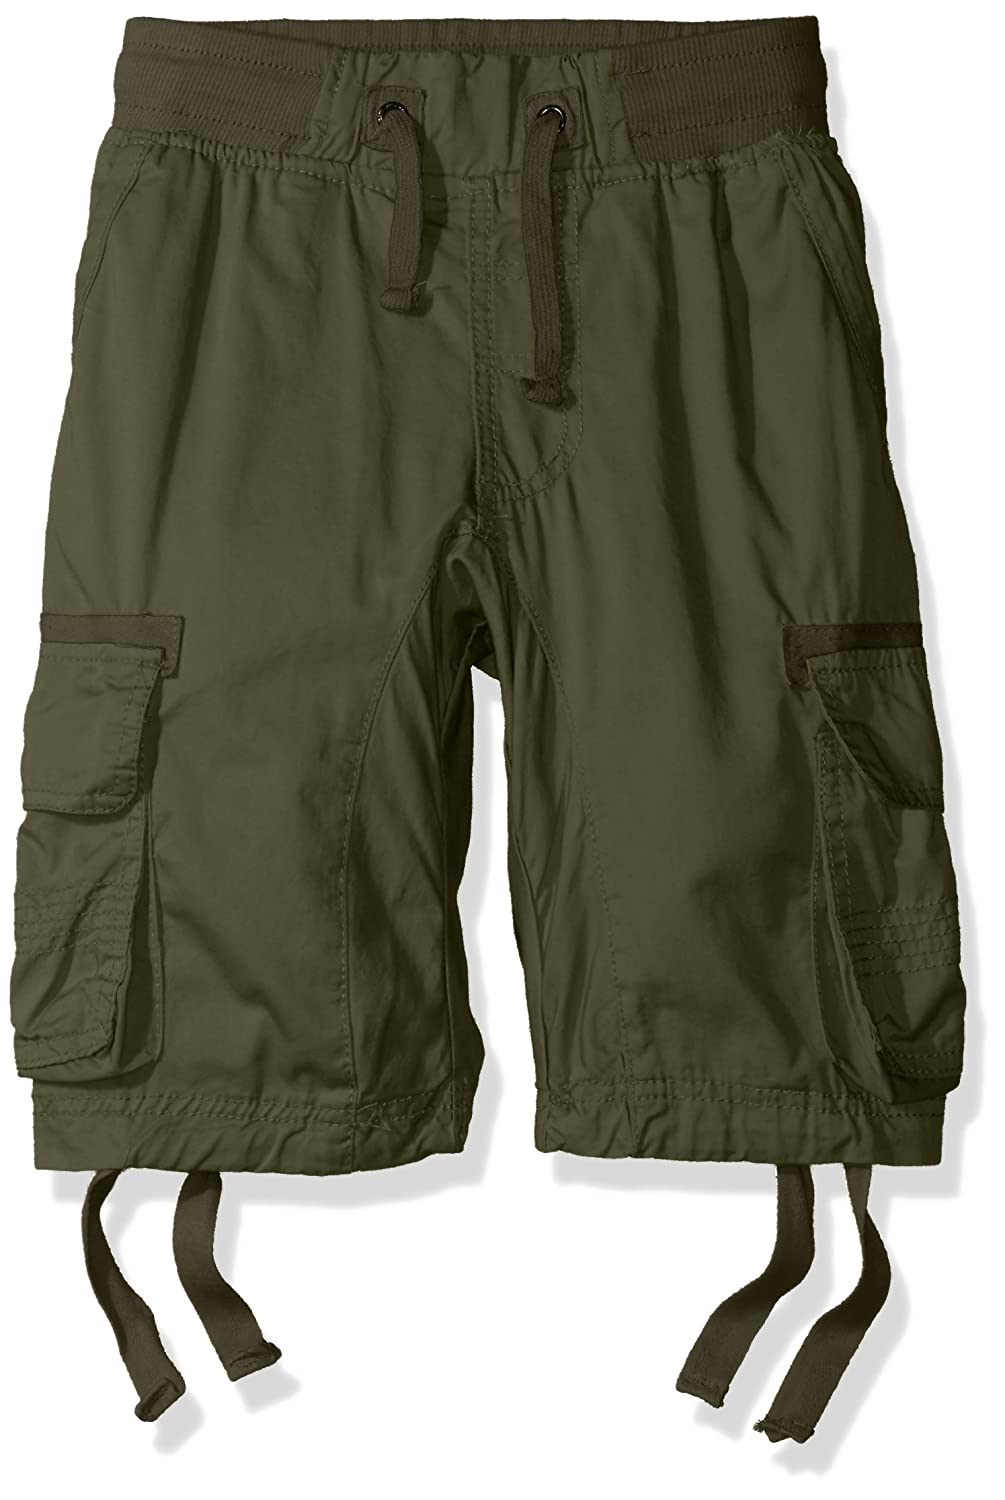 Southpole boys Big Boys Jogger Shorts With Cargo Pockets in Basic Solid Colors 9005-3366